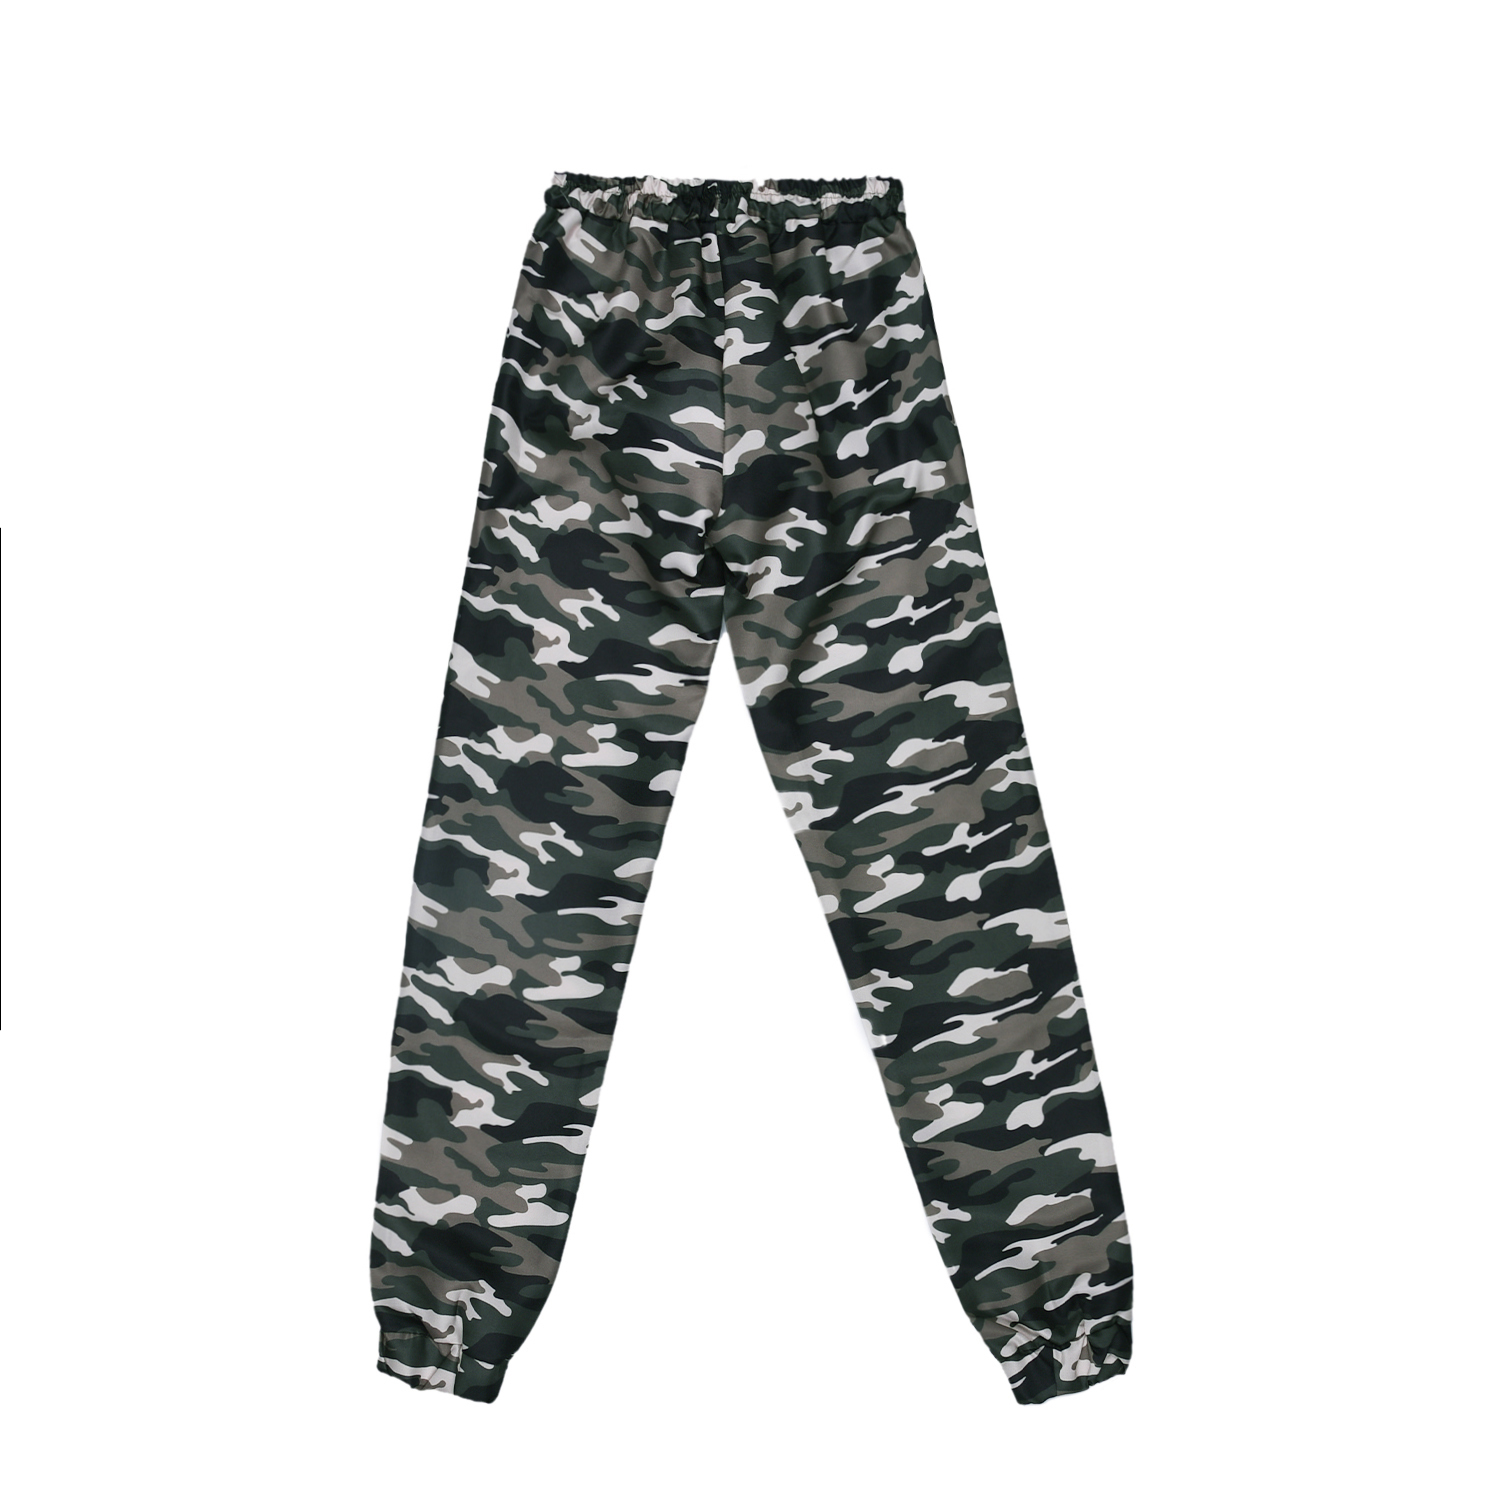 22cd6303e1960 Womens High Waist Camo Pants Casual Cargo Joggers Trousers Hip Hop Rock  Skinny L-in Pants & Capris from Women's Clothing on Aliexpress.com |  Alibaba Group